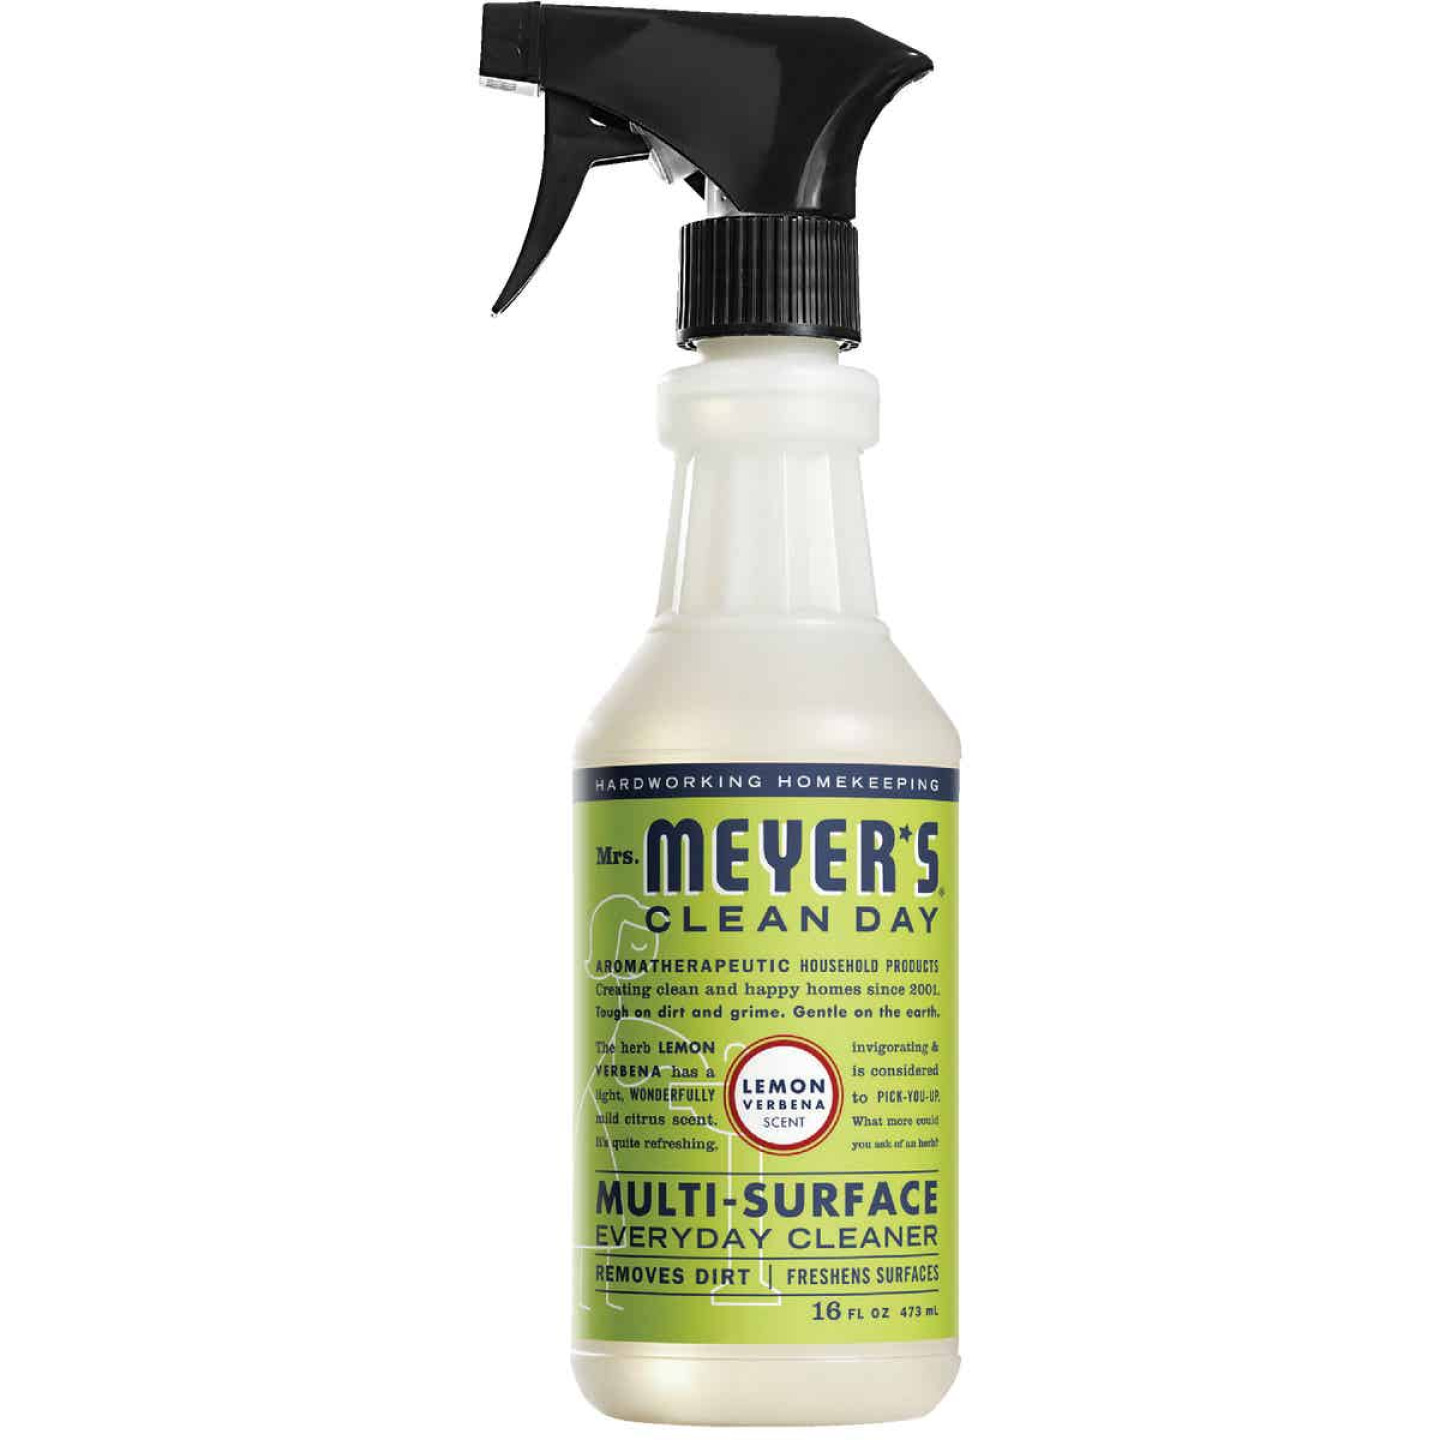 Mrs. Meyer's Clean Day 16 Oz. Lemon Verbena Multi-Surface Everyday Cleaner Image 1